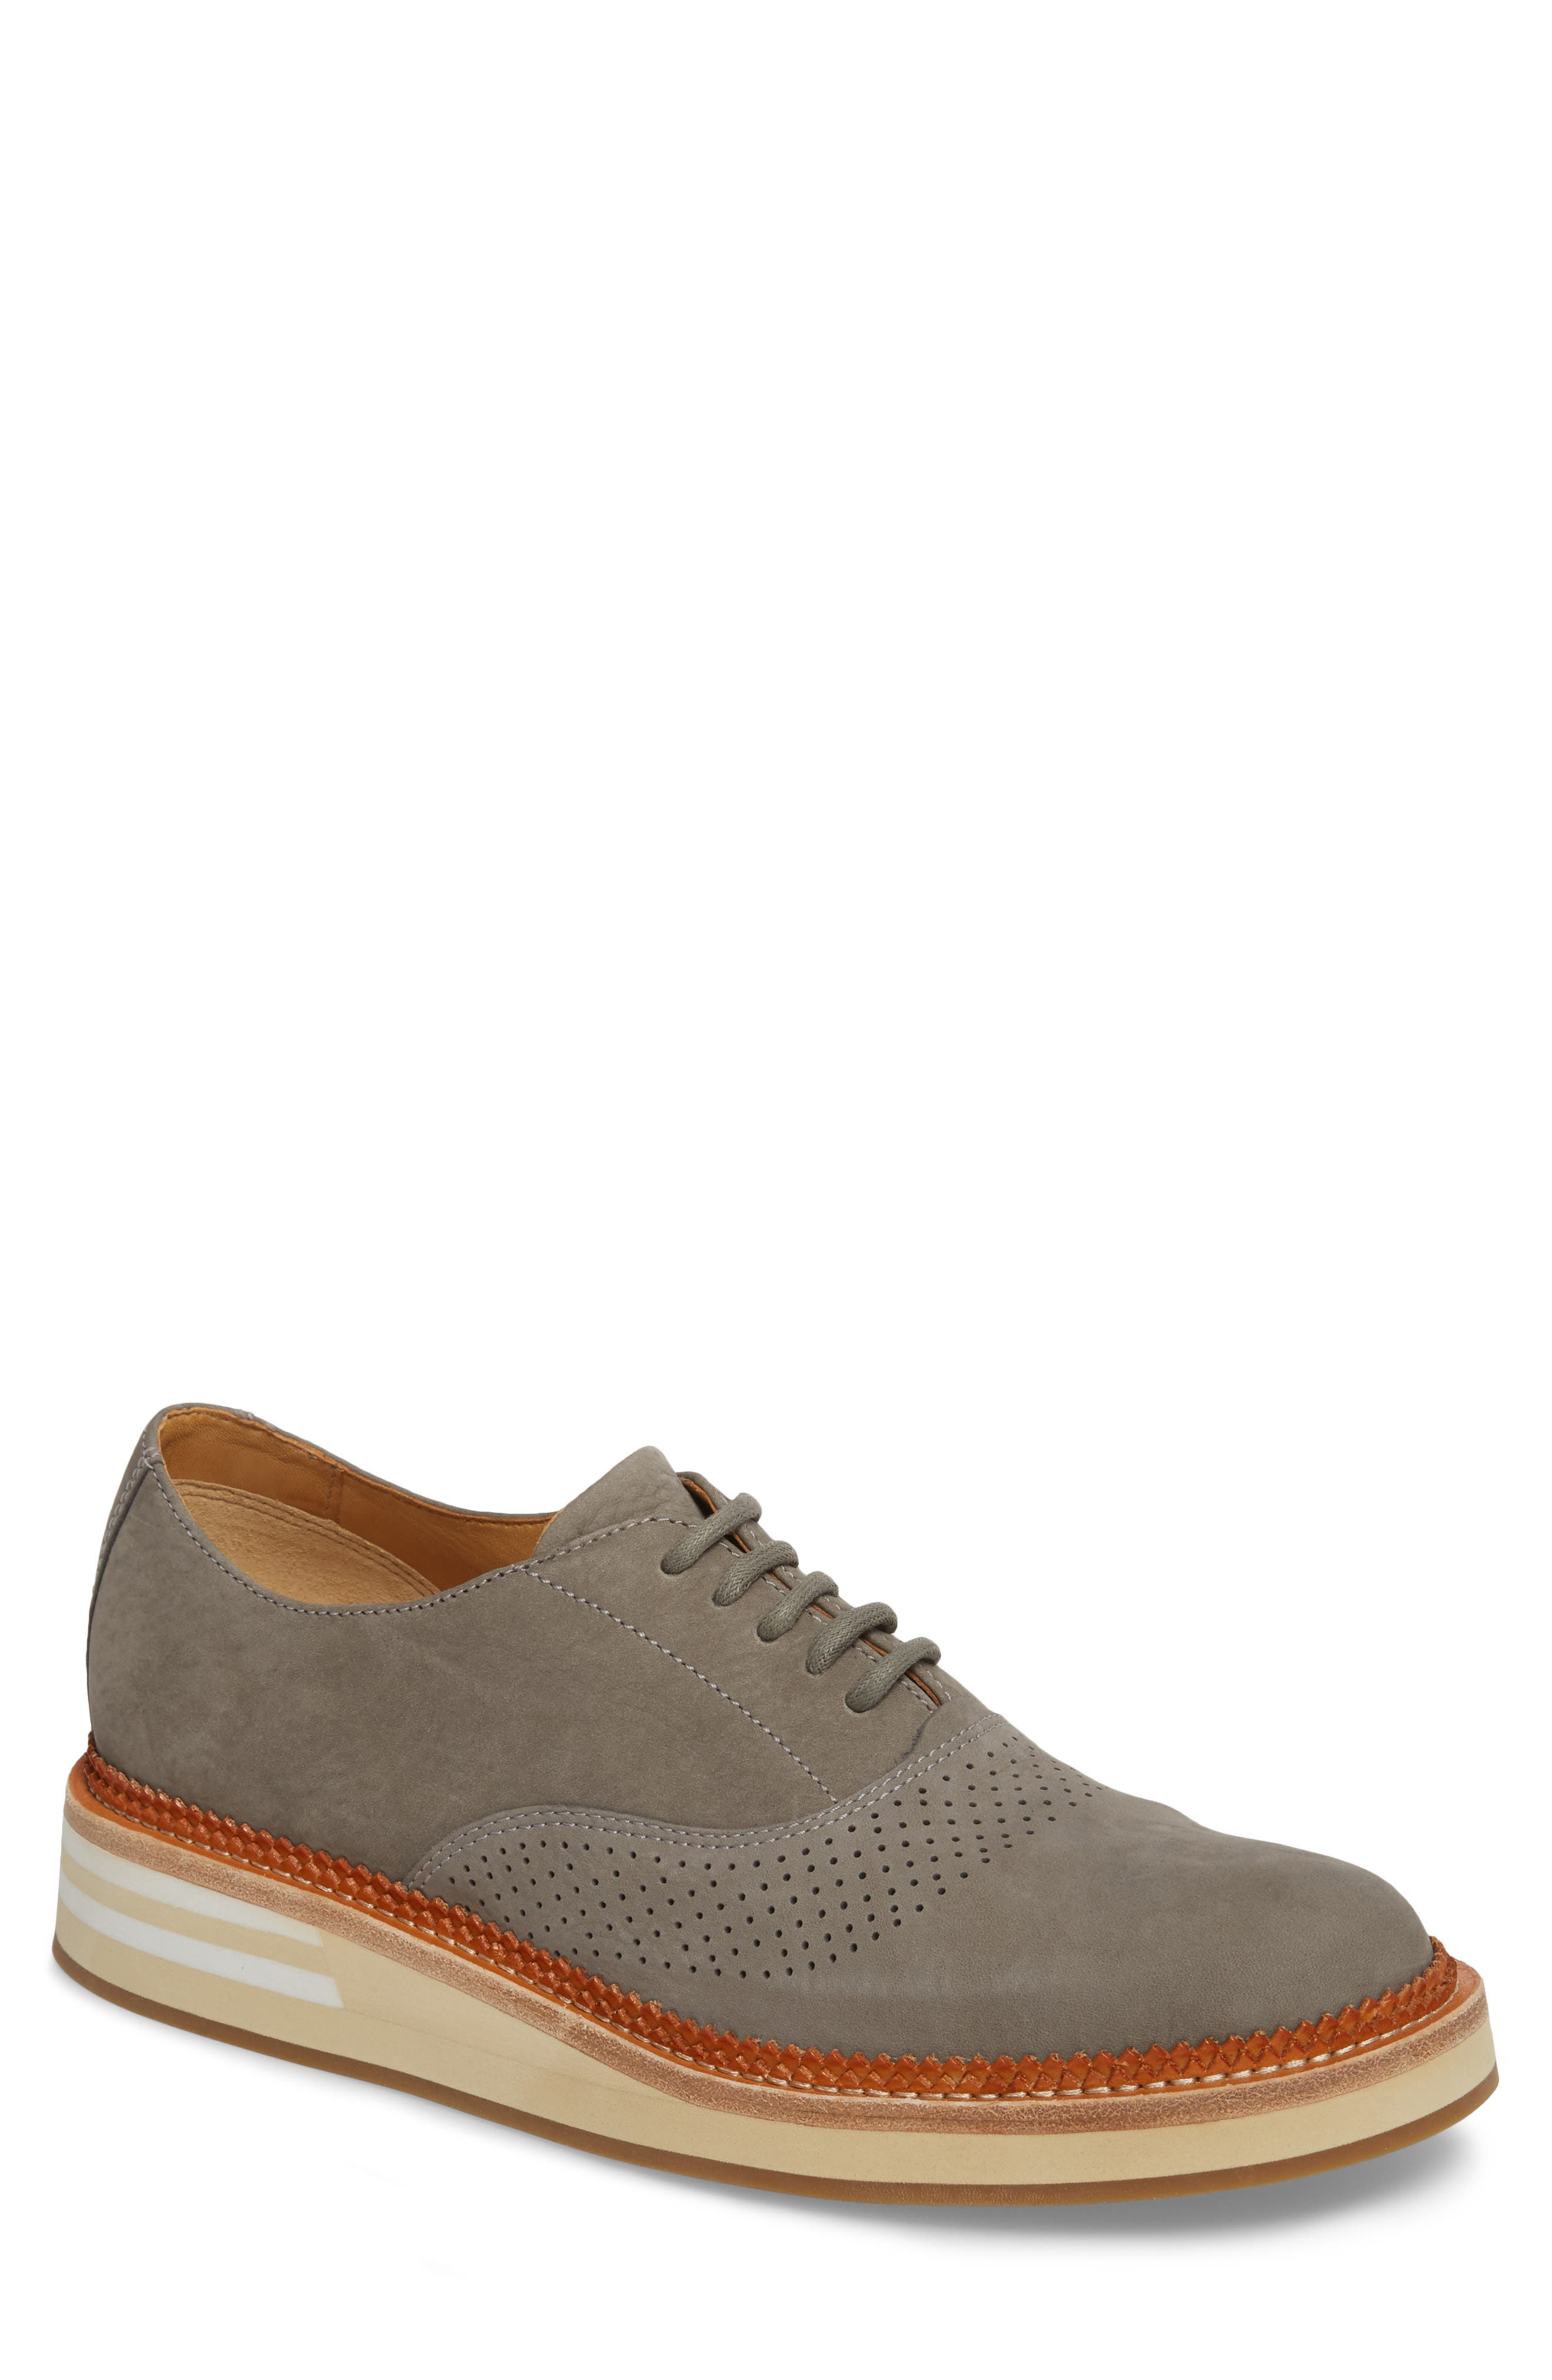 Cloud Perforated Oxford,                             Main thumbnail 1, color,                             Grey